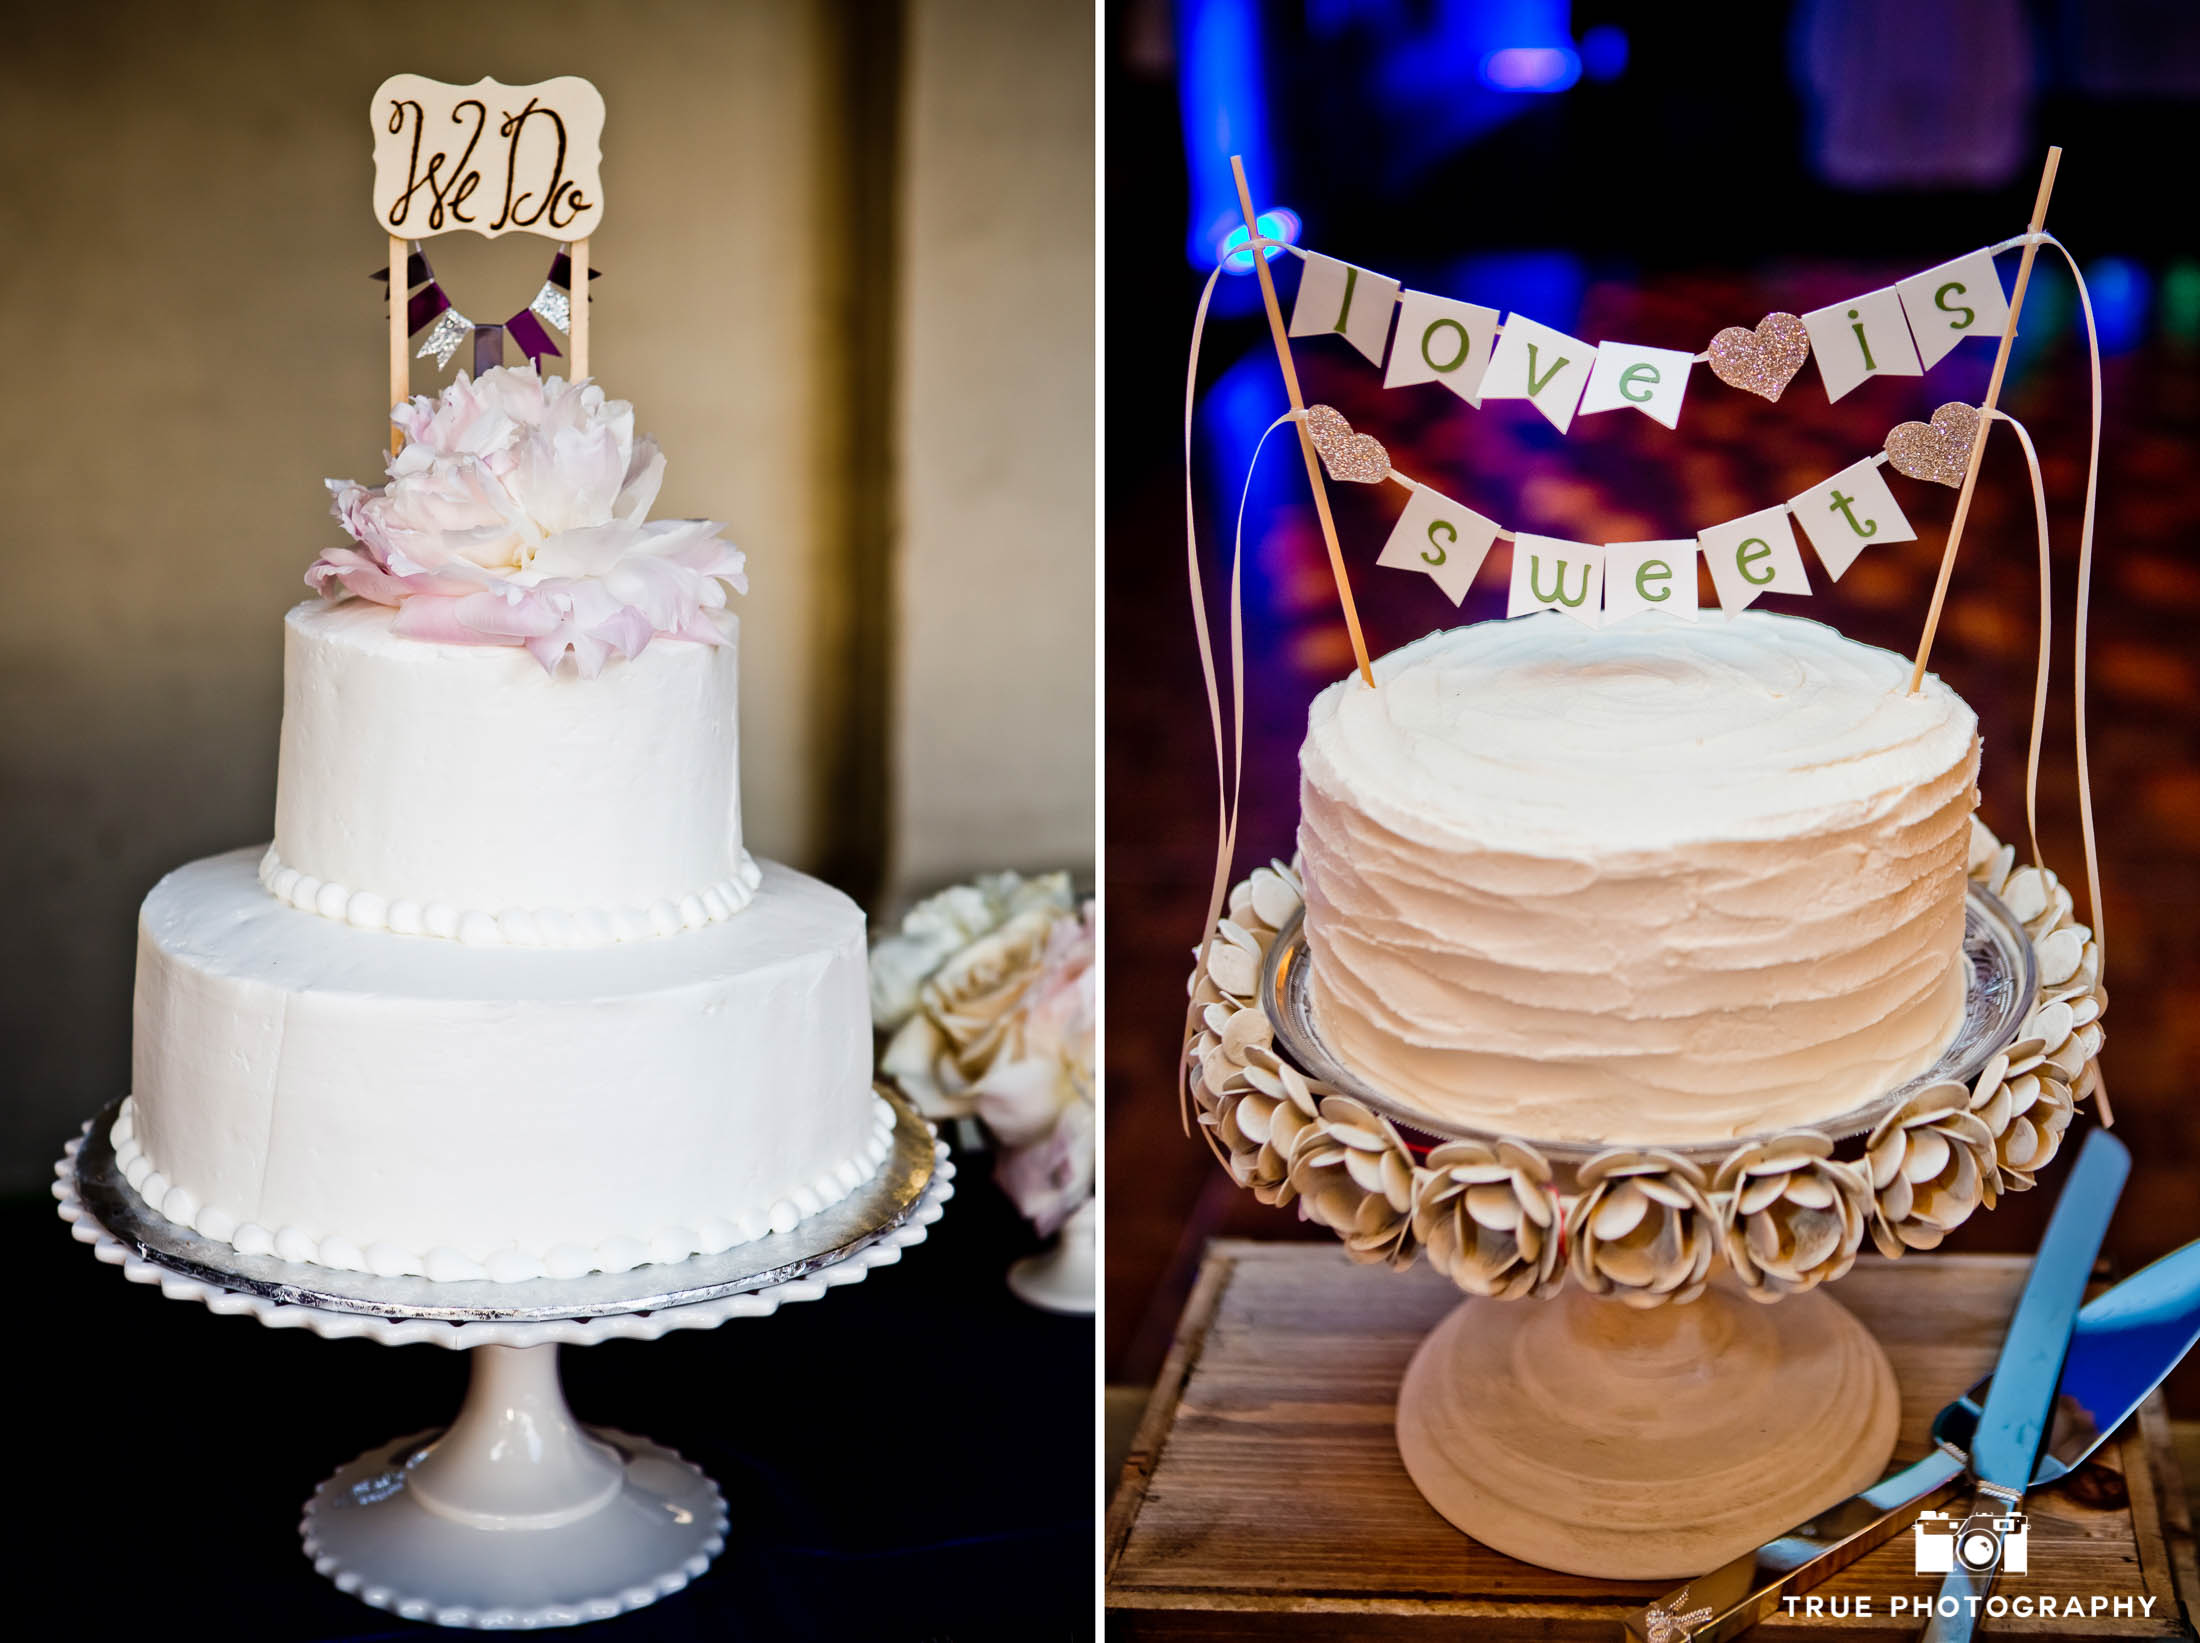 Cute, rustic wedding cake toppers with bannered signs